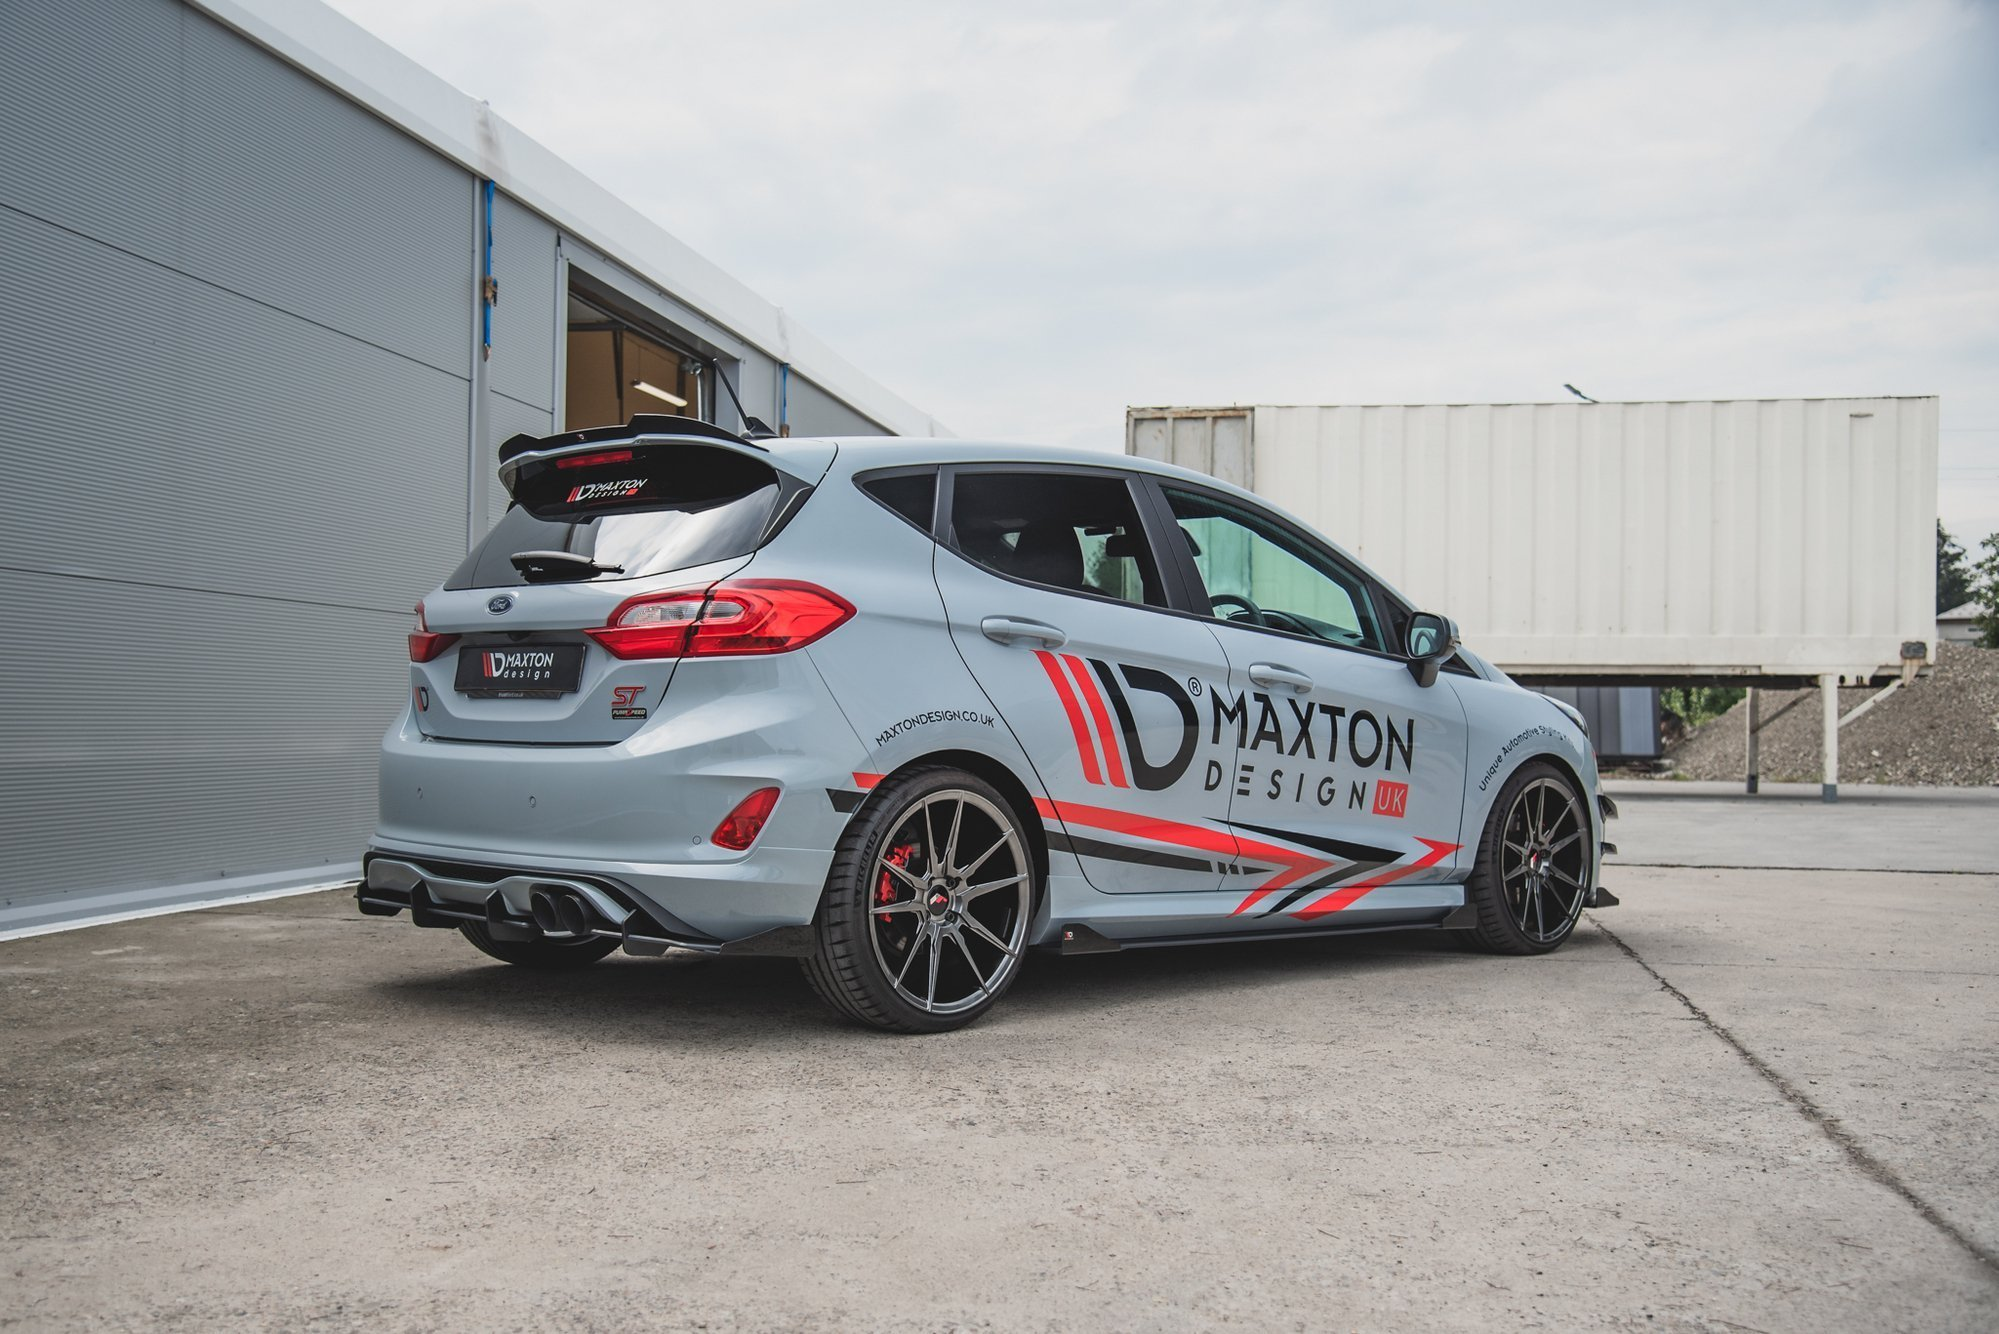 Racing Durability Side Skirts Diffusers Flaps Ford Fiesta Mk8 St St Line Our Offer Ford Fiesta St Mk8 2018 Our Offer Ford Fiesta St Line Mk8 2017 Maxton Design